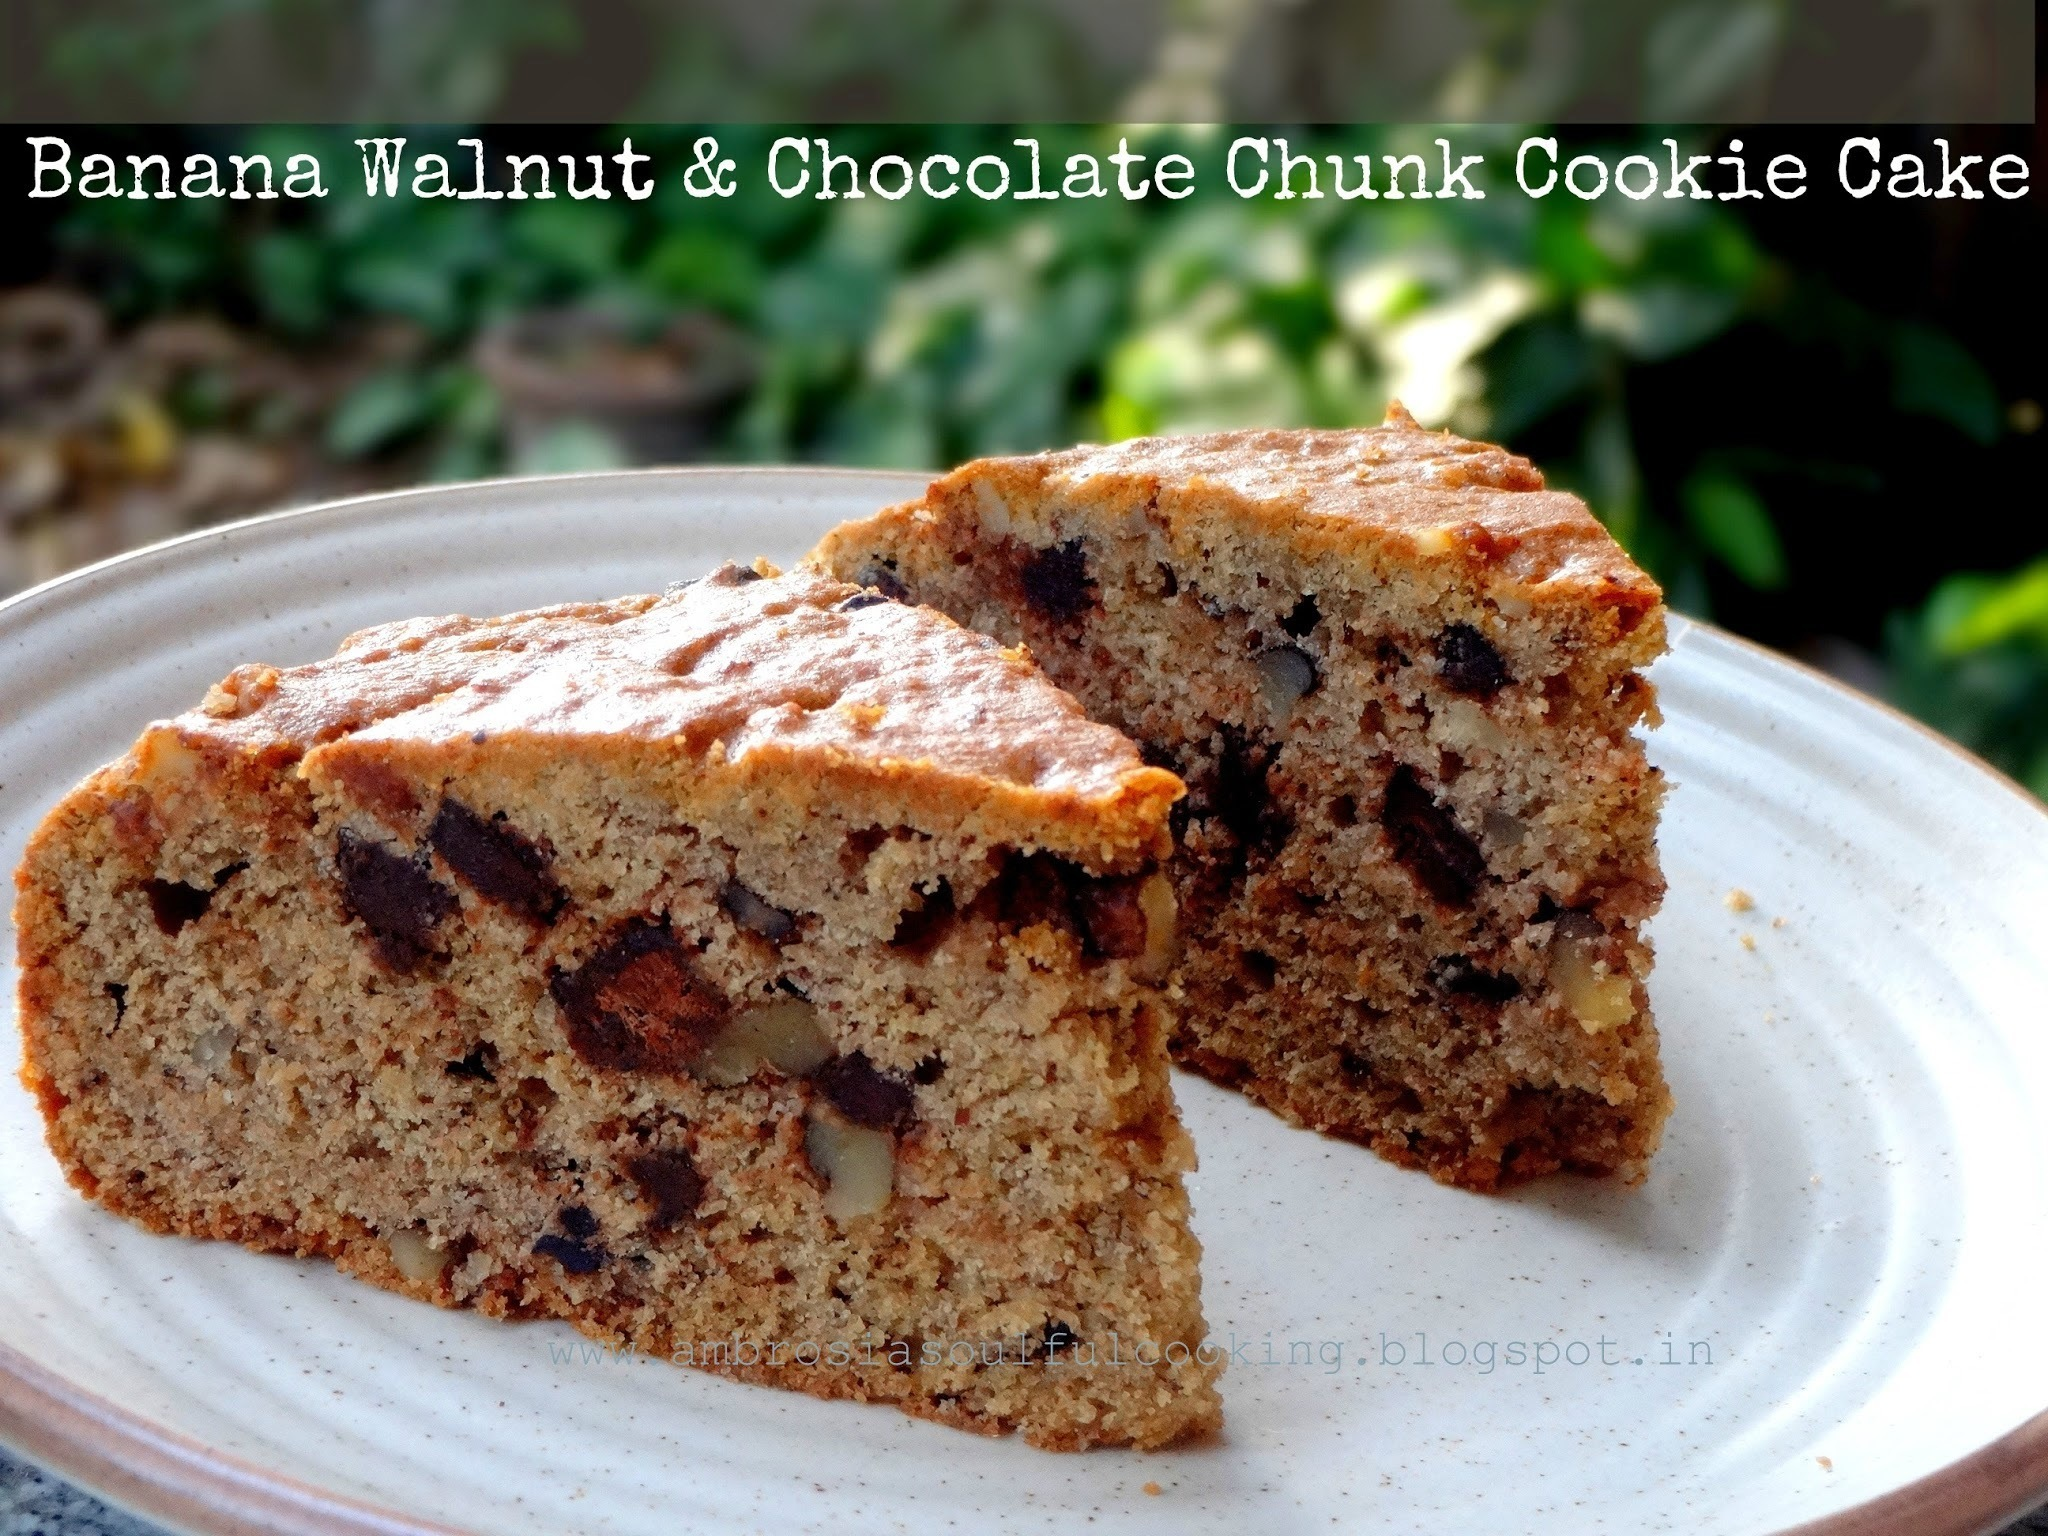 Banana Walnut & Chocolate Cookie Cake - Wholegrain and Egg less